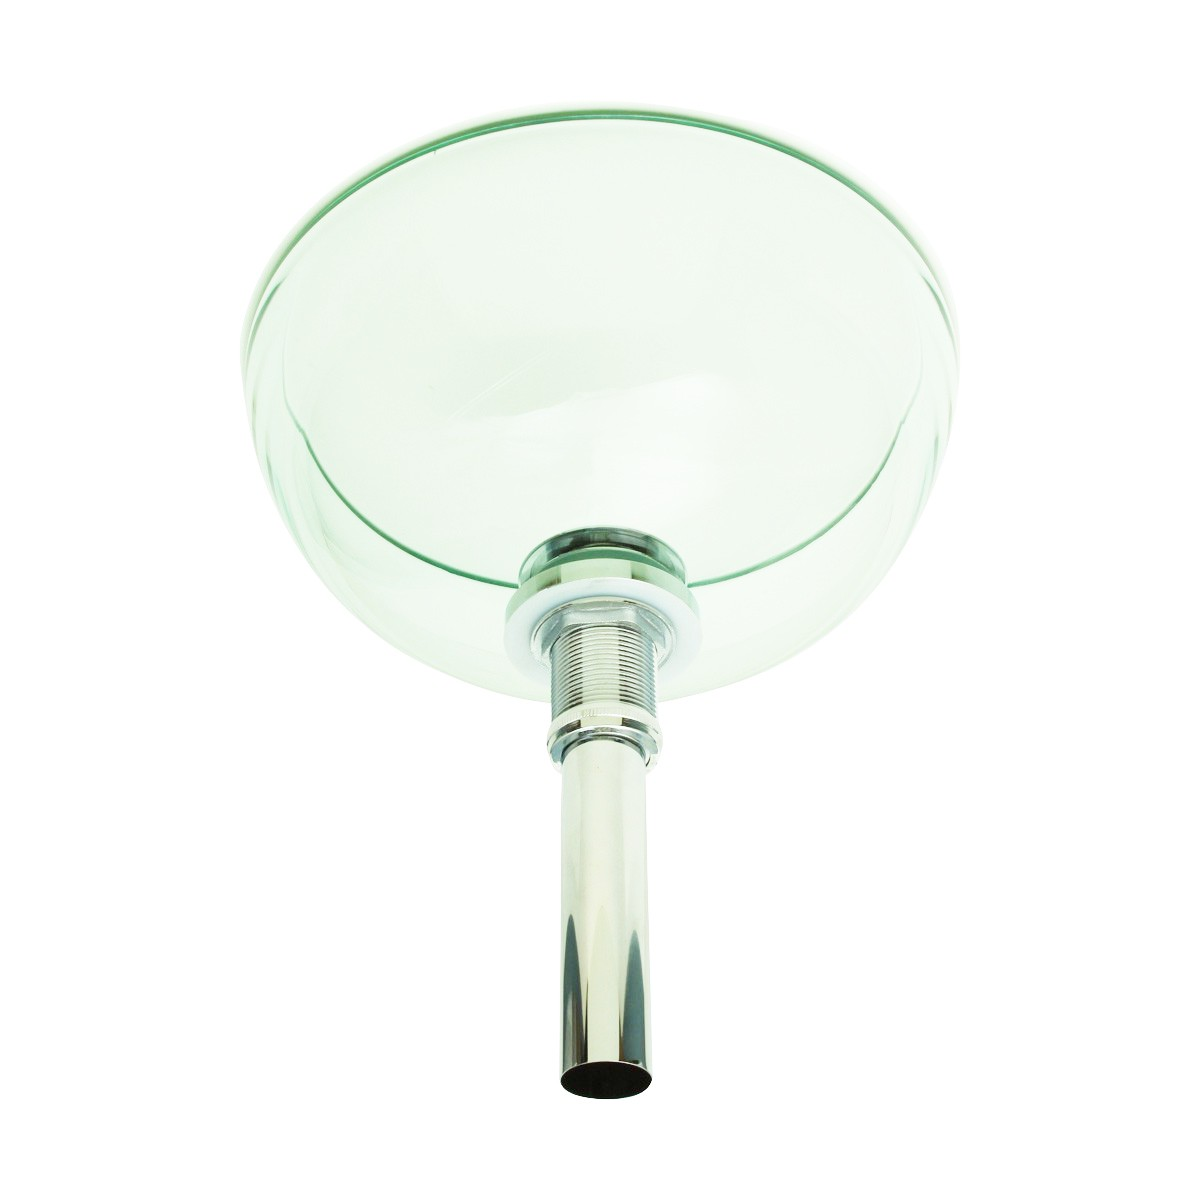 Bathroom Tempered Glass Vessel Sink Clear Mini Bowl Round with Popup Drain bathroom vessel sinks Countertop vessel sink Glass Vessel Bathroom Sink